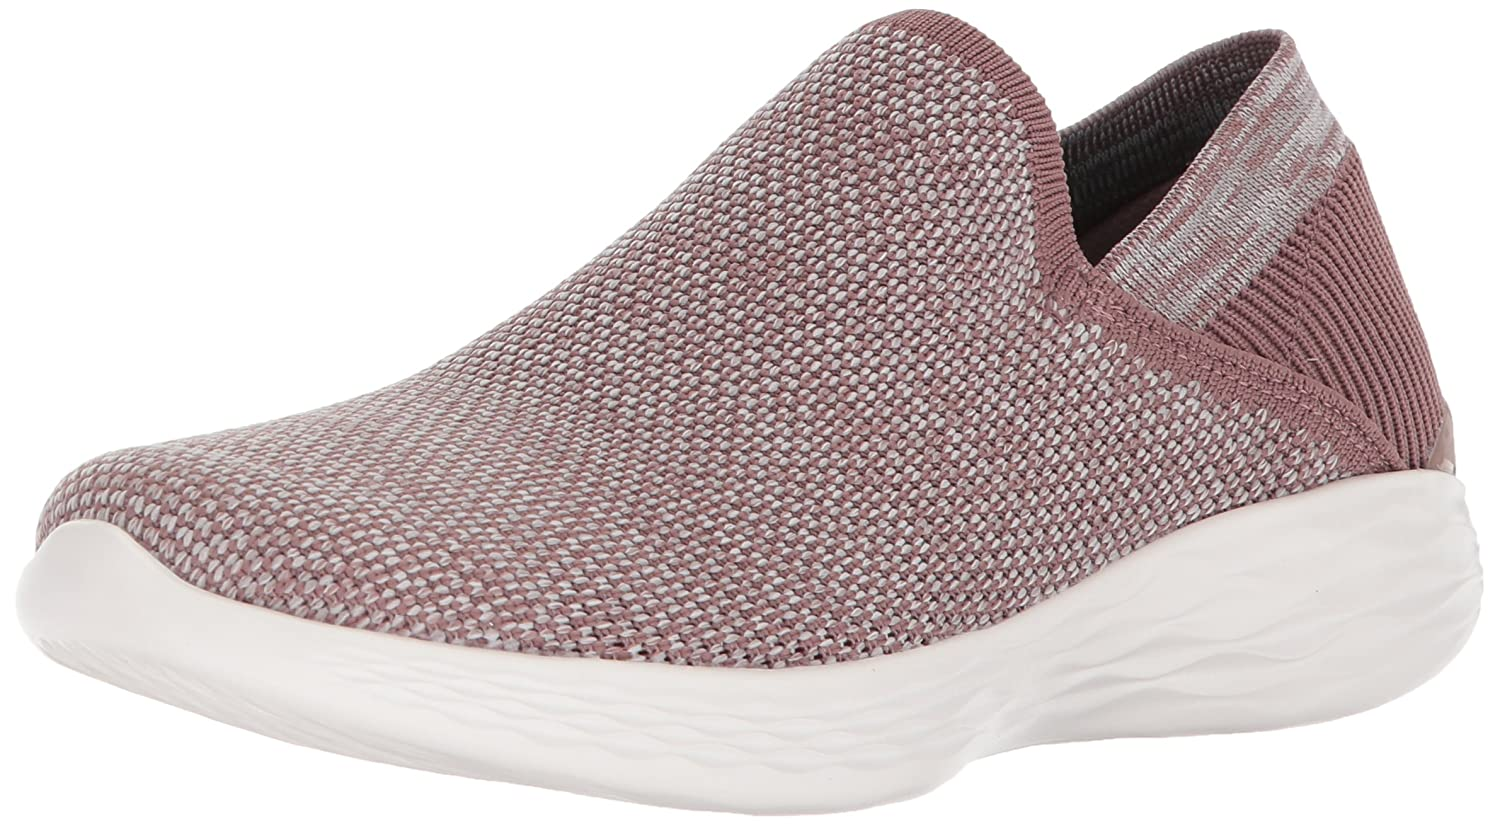 Skechers You-Rise, Baskets Rose Skechers Enfiler Femme Rose You-Rise, (Mauve) db4b501 - automaticcouplings.space